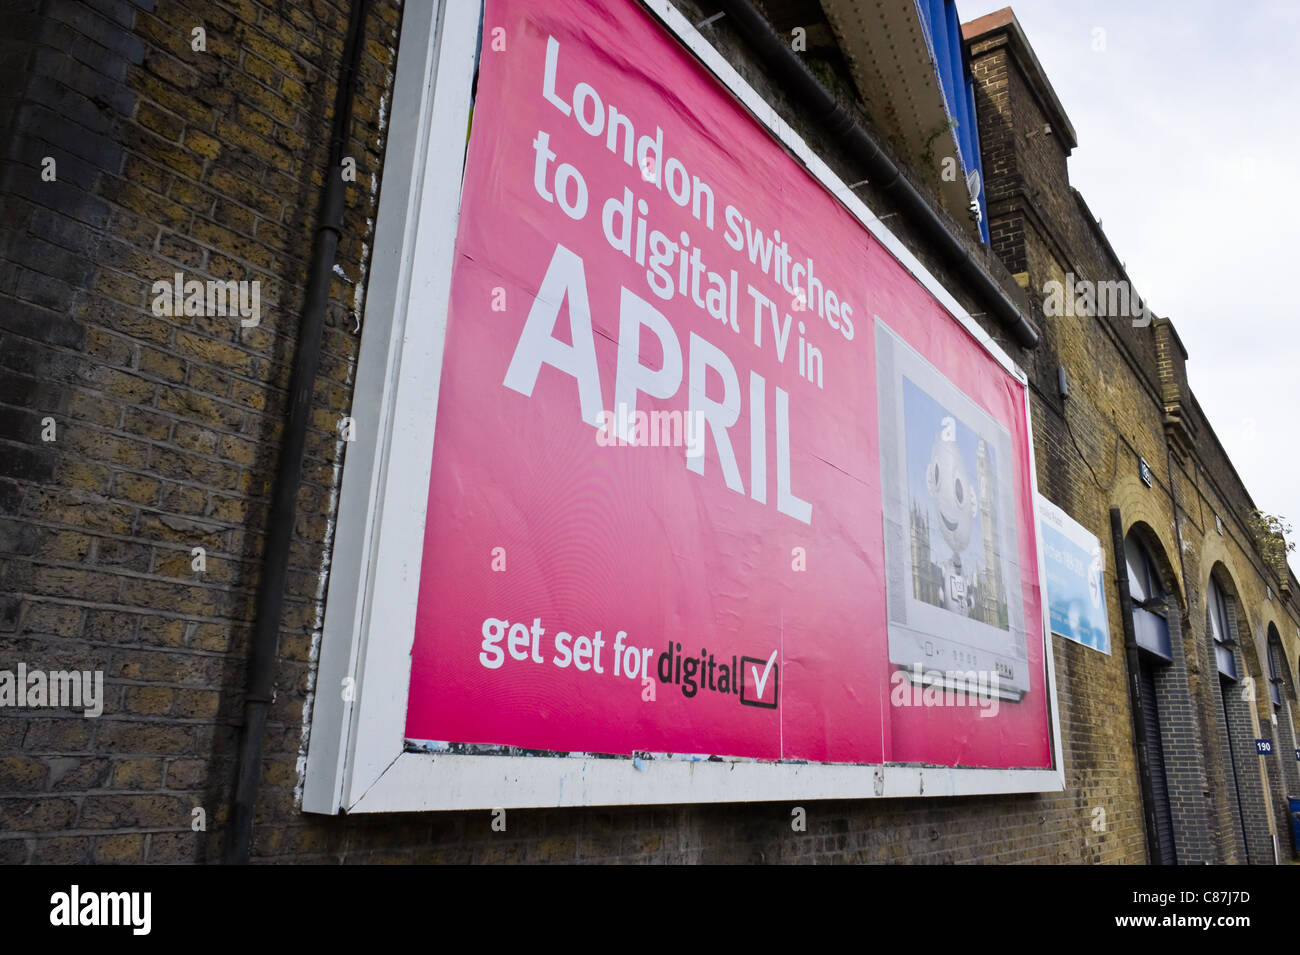 Billboard for digital TV switchover in London, due to take place in April 2012 - Stock Image